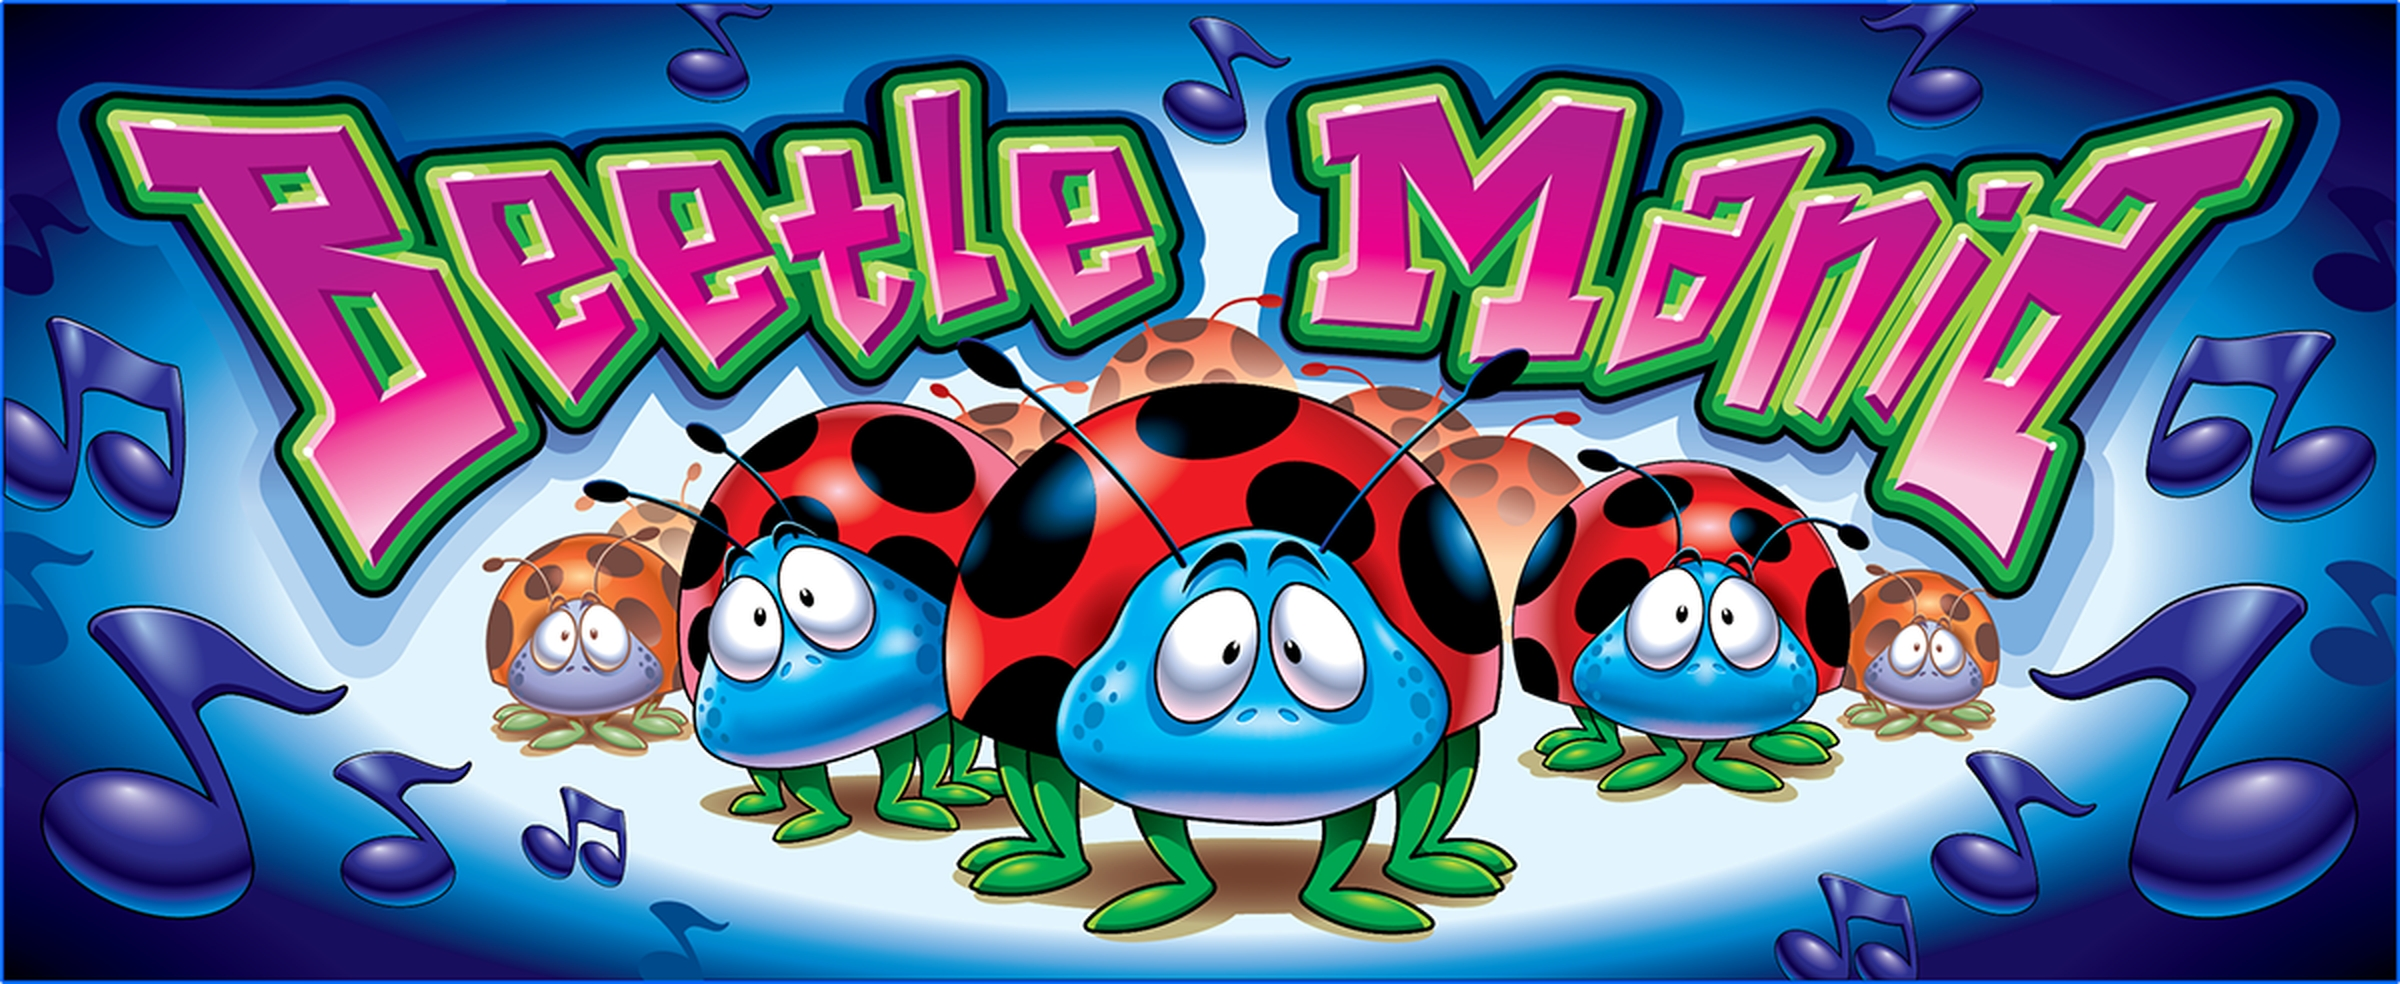 The Beetle Mania Online Slot Demo Game by Novomatic